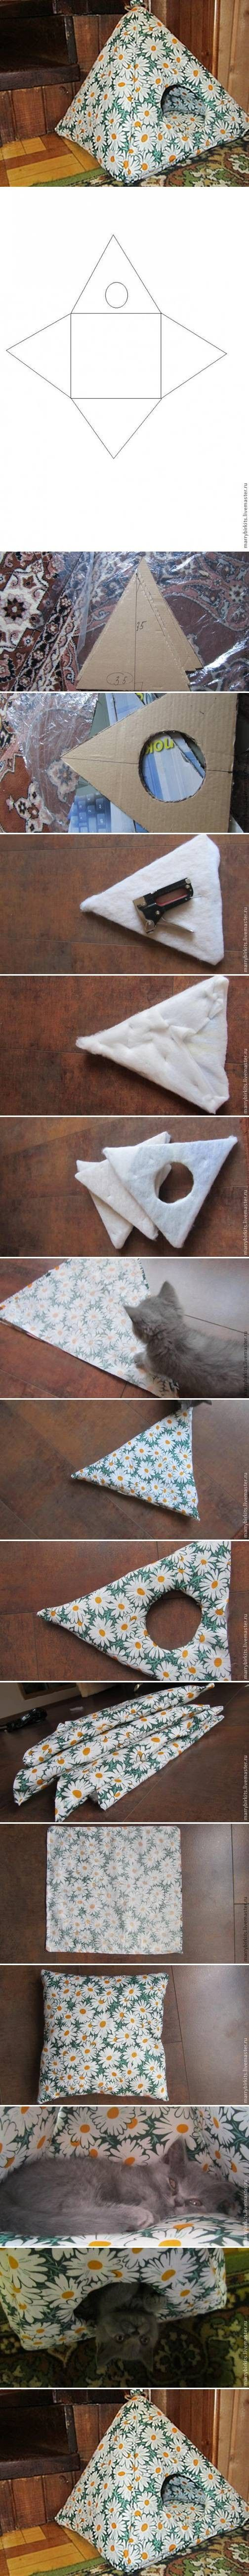 DIY cat house, also great for stray cats so they can stay warm and safe! Repinned from Vital Outburst clothing vitaloutburst.com